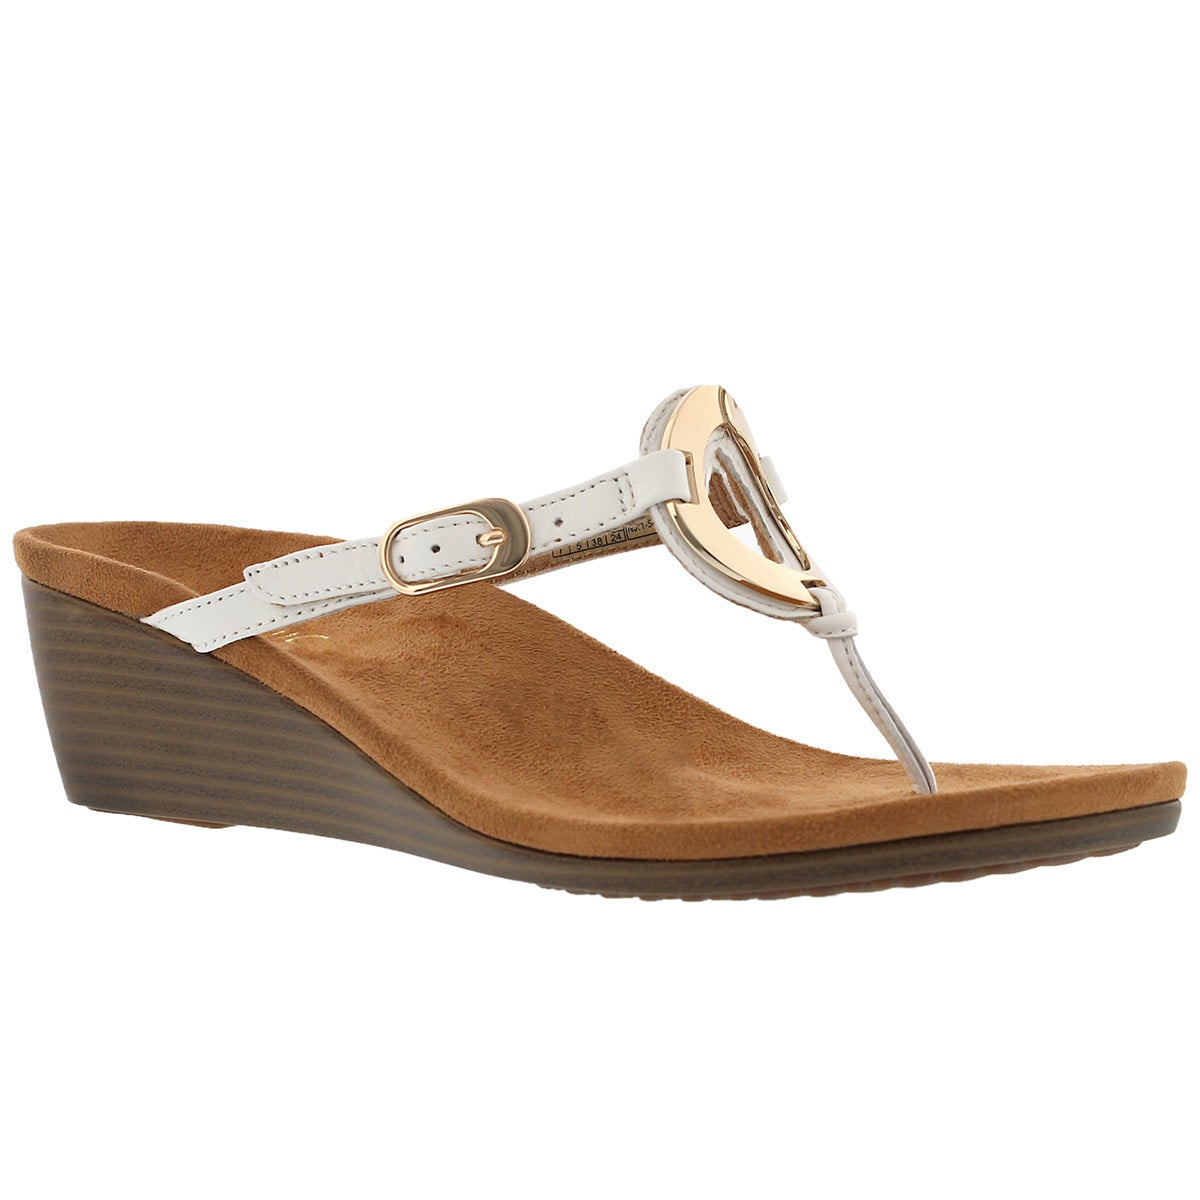 Women's ORCHID wht arch support tthong sandals